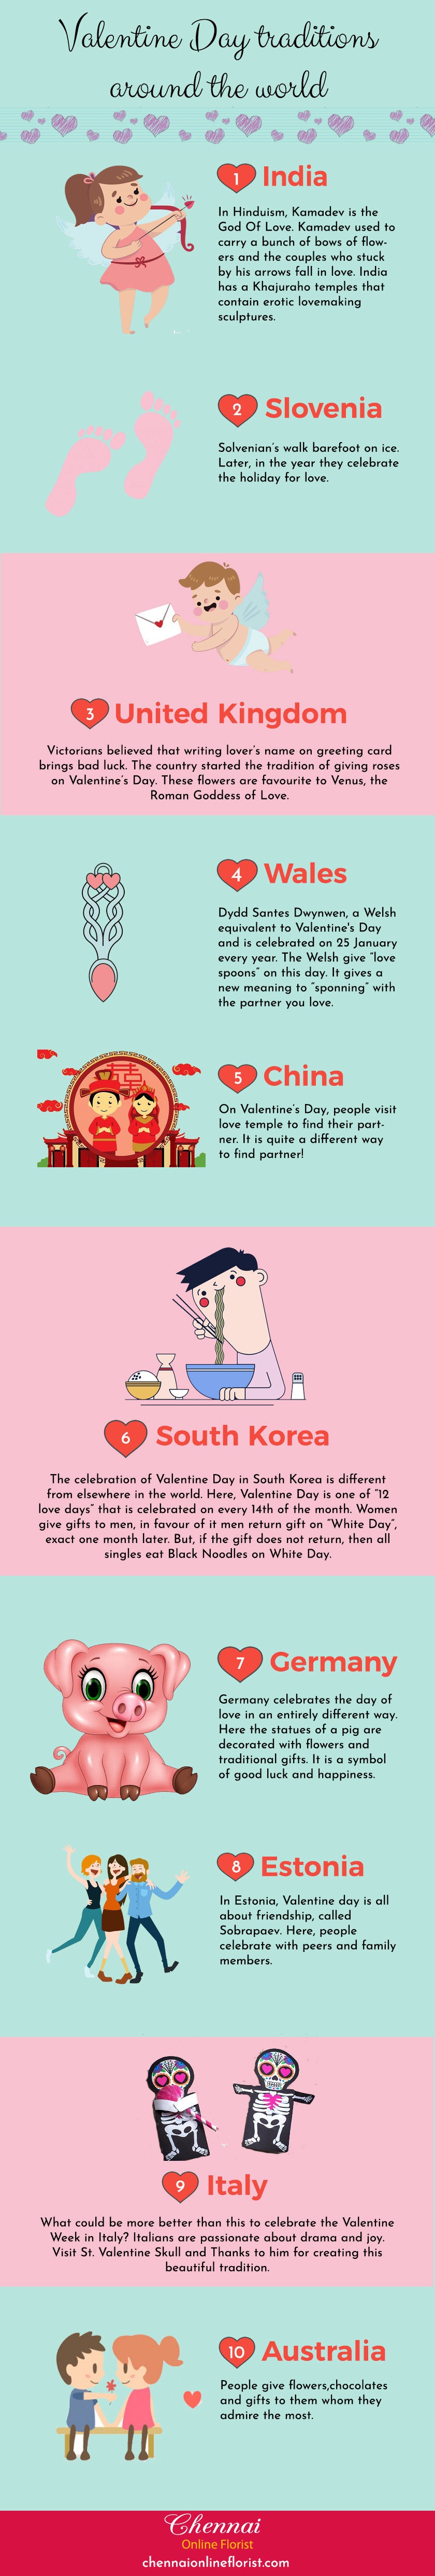 chennai%20infograph - Valentine Day Traditions Around the World